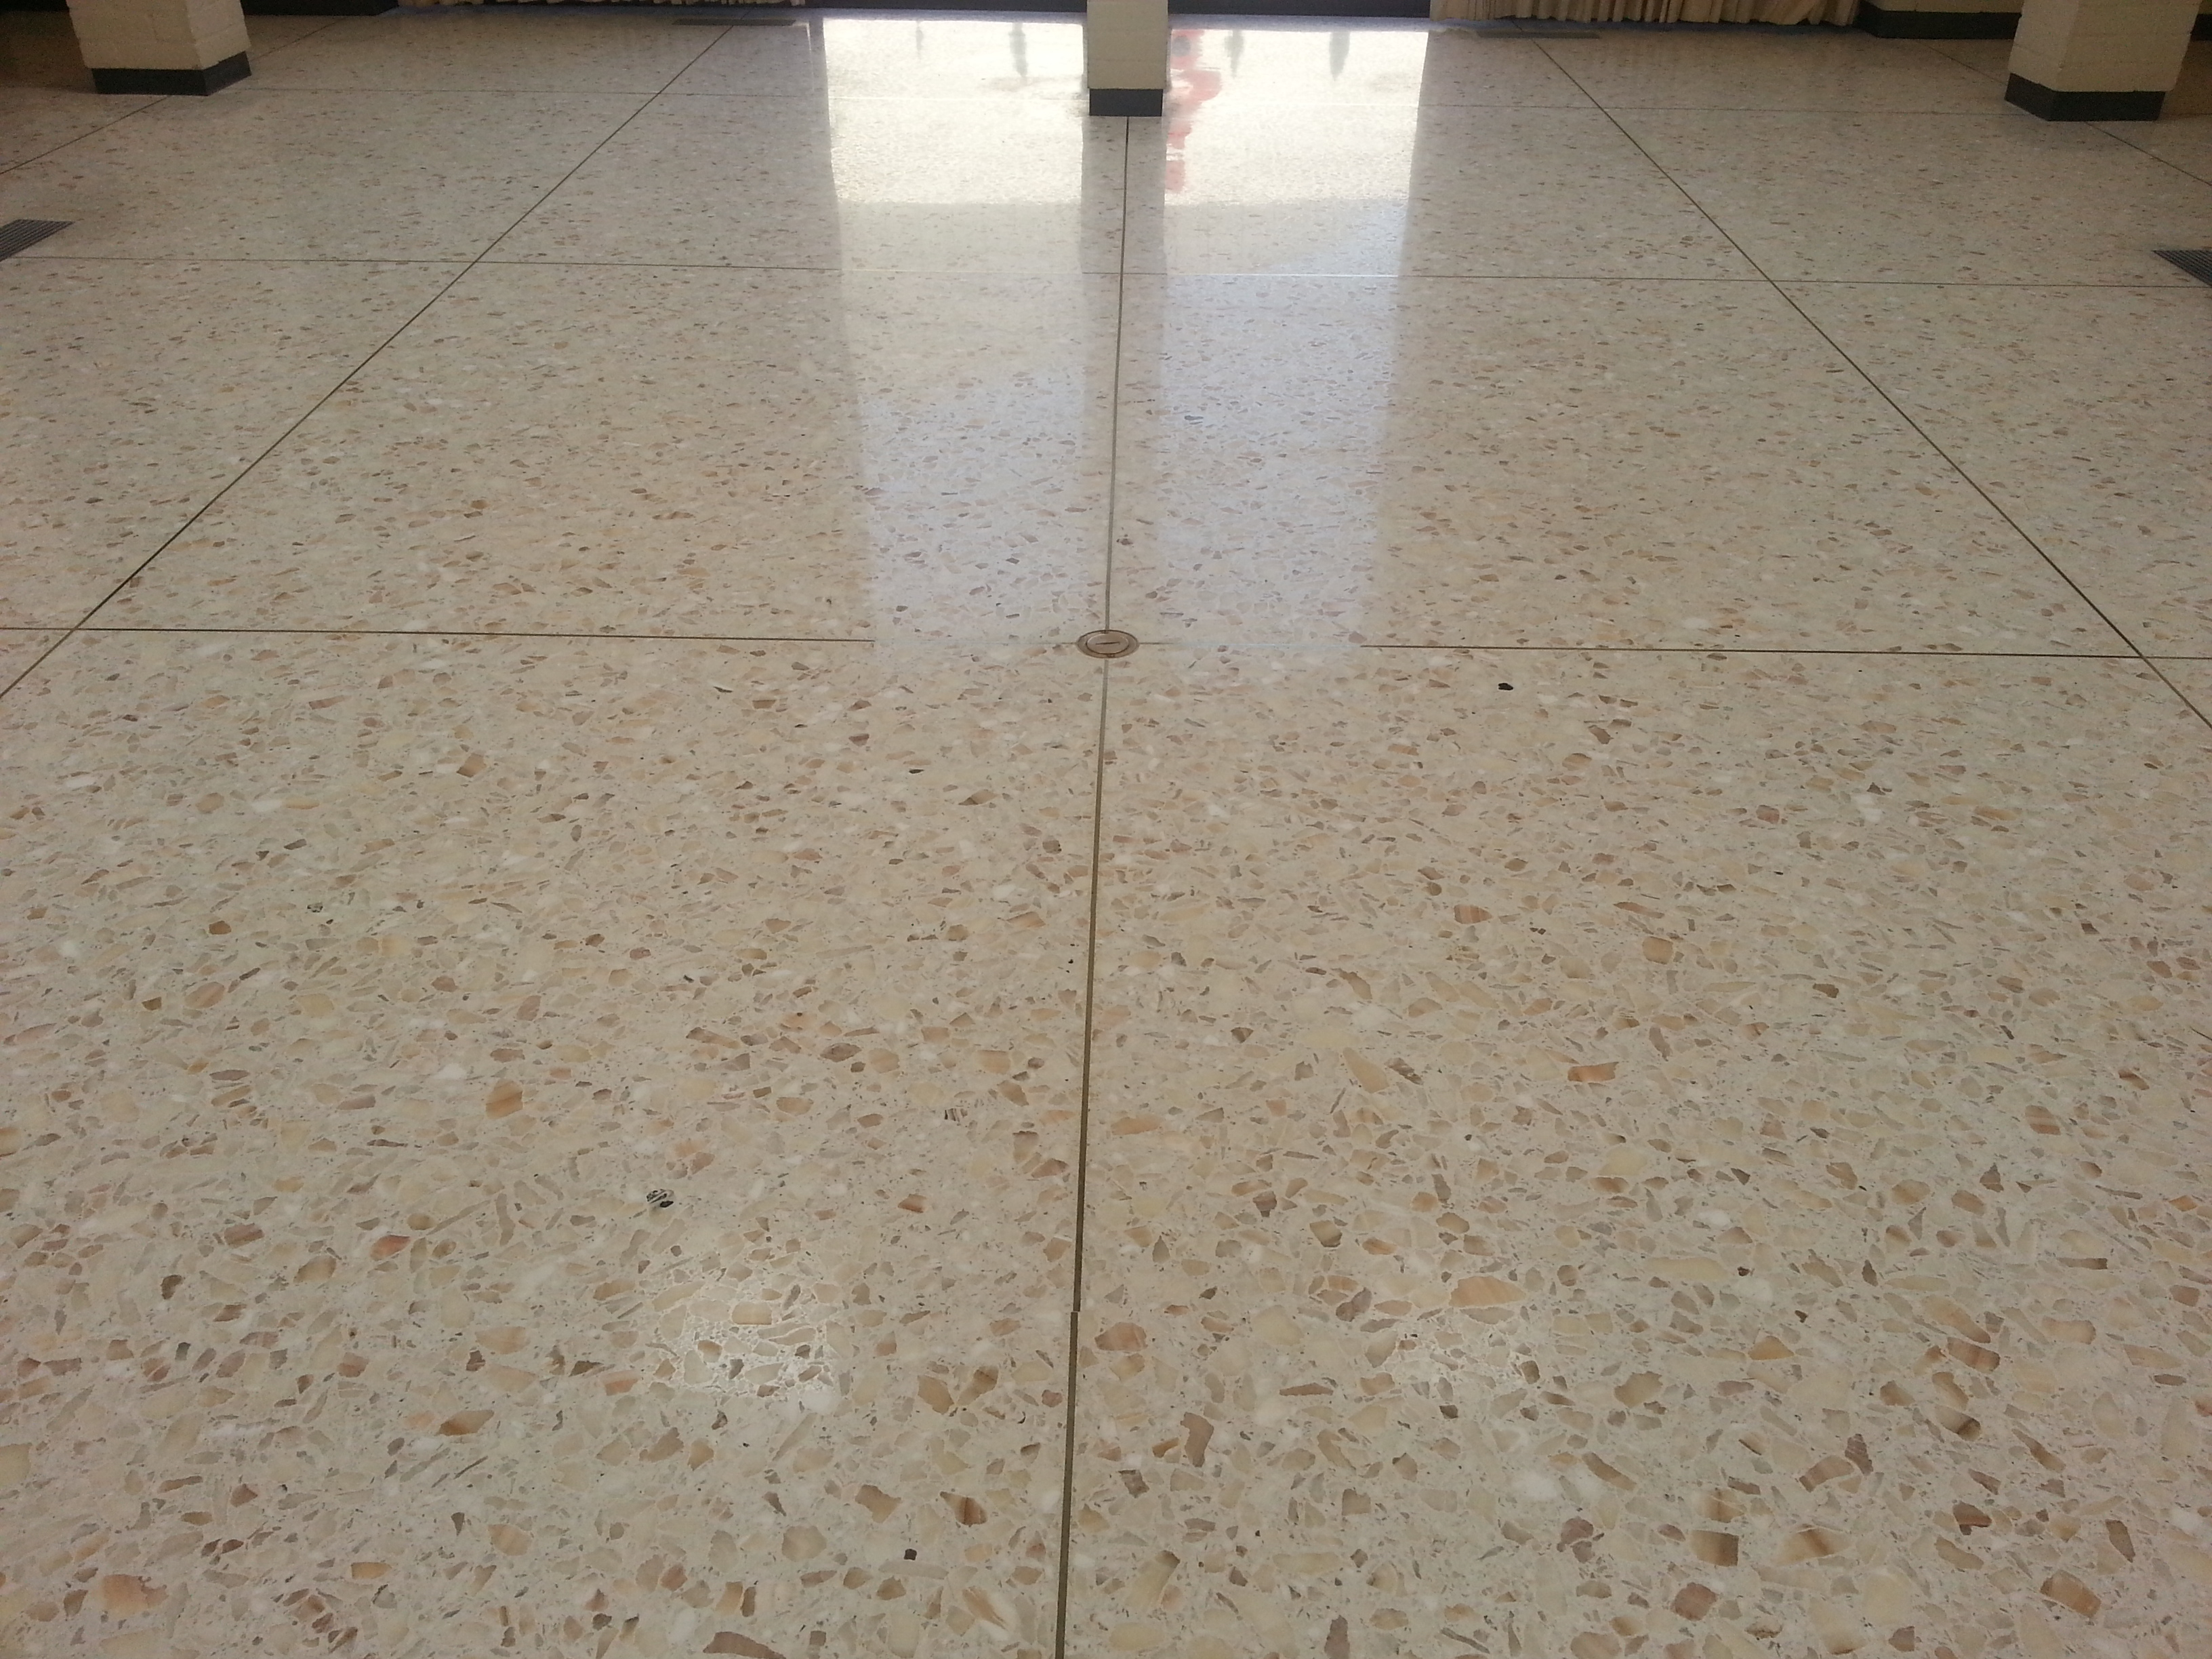 Terrazzo tile floor cleaned, honed and sealed